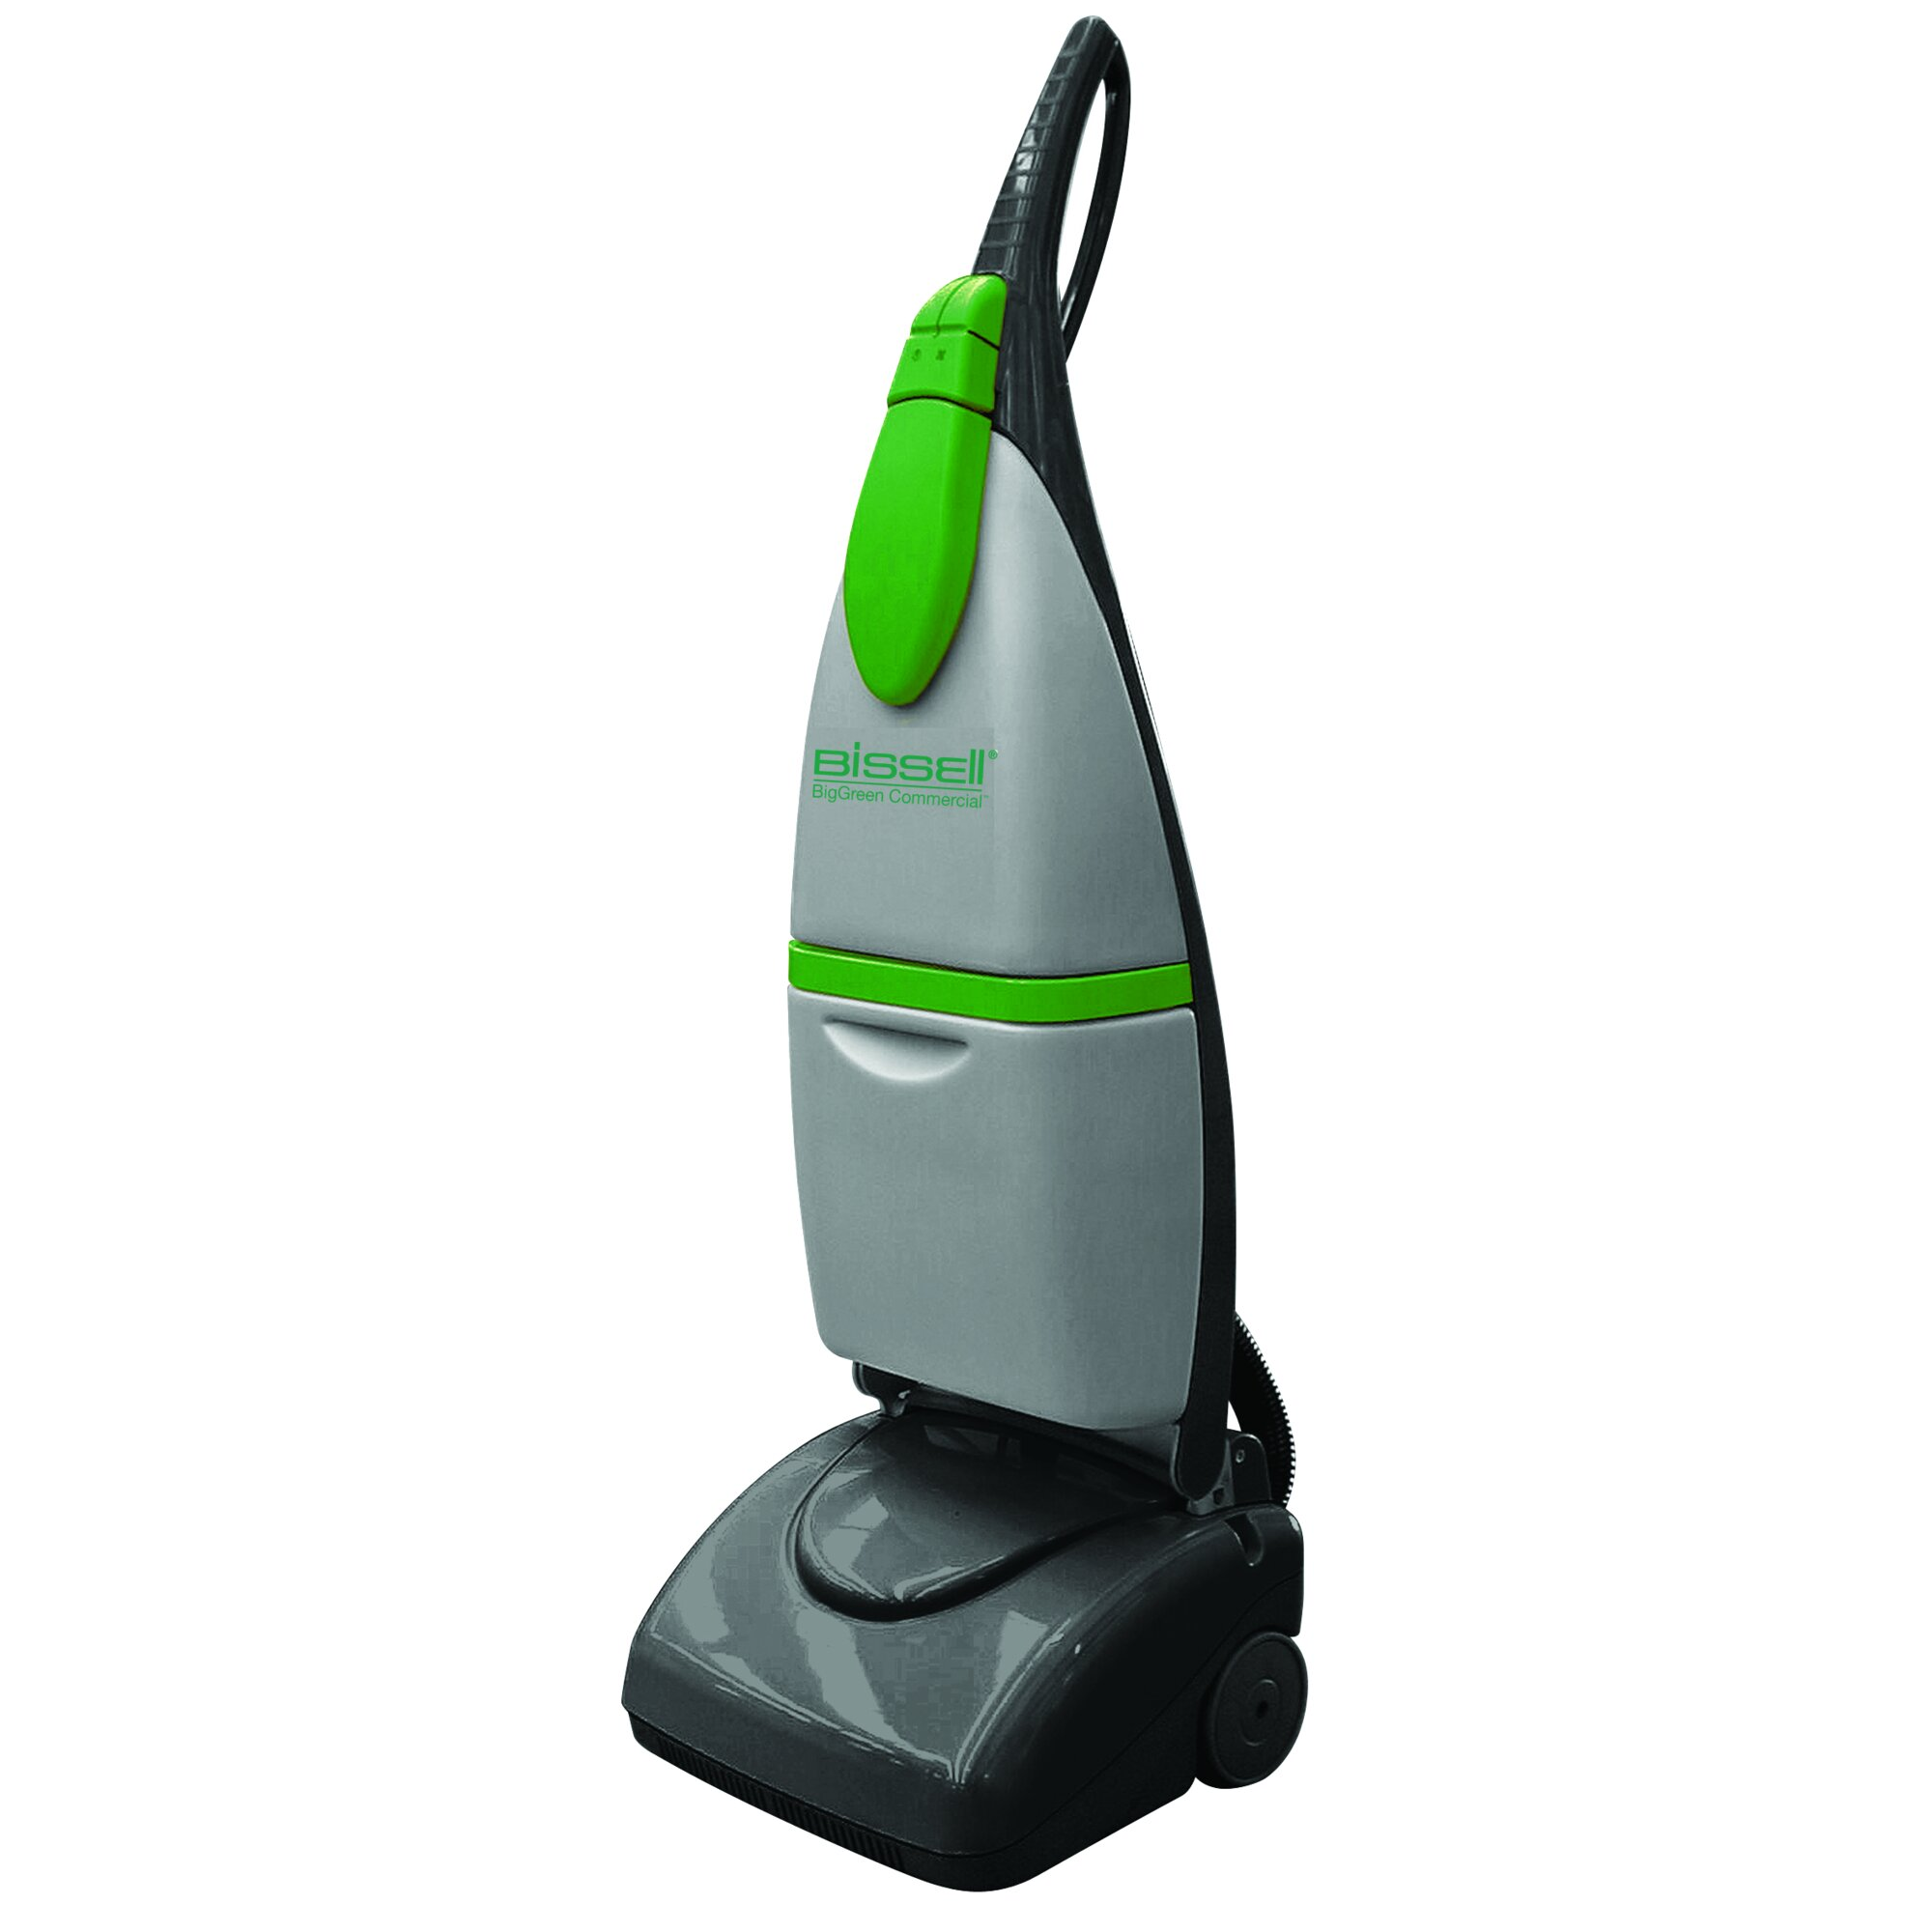 Bissell Hardwood Floor Cleaner bissell steam sweep hard floor cleaner b selloscope Bissel Upright Floor Scrubber Commercial Cleaner